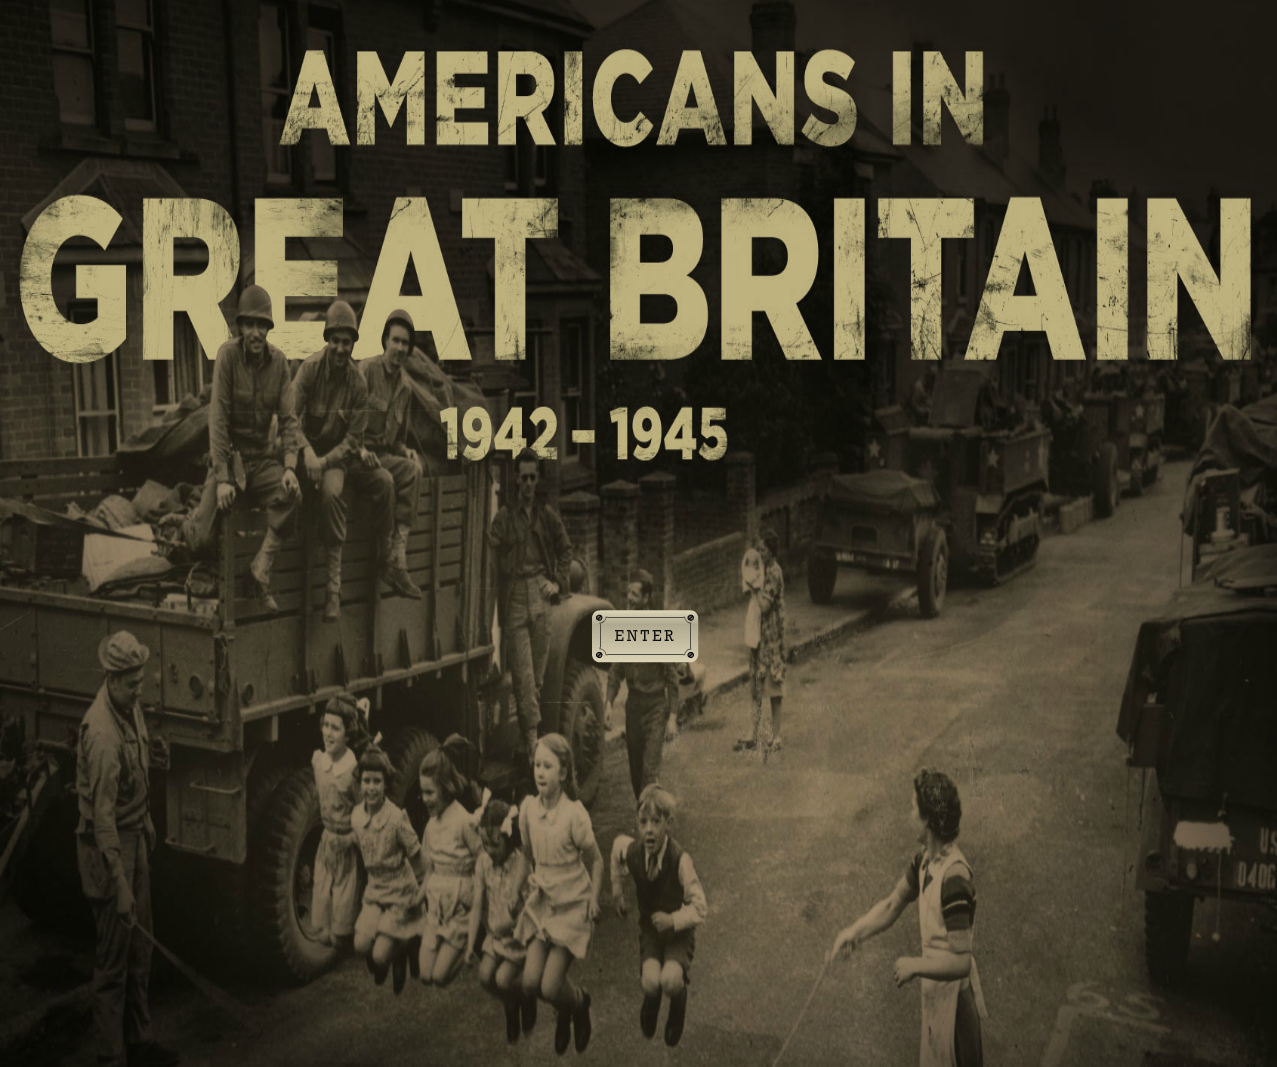 Americans in Great Britain: 1942-1945 Interactive